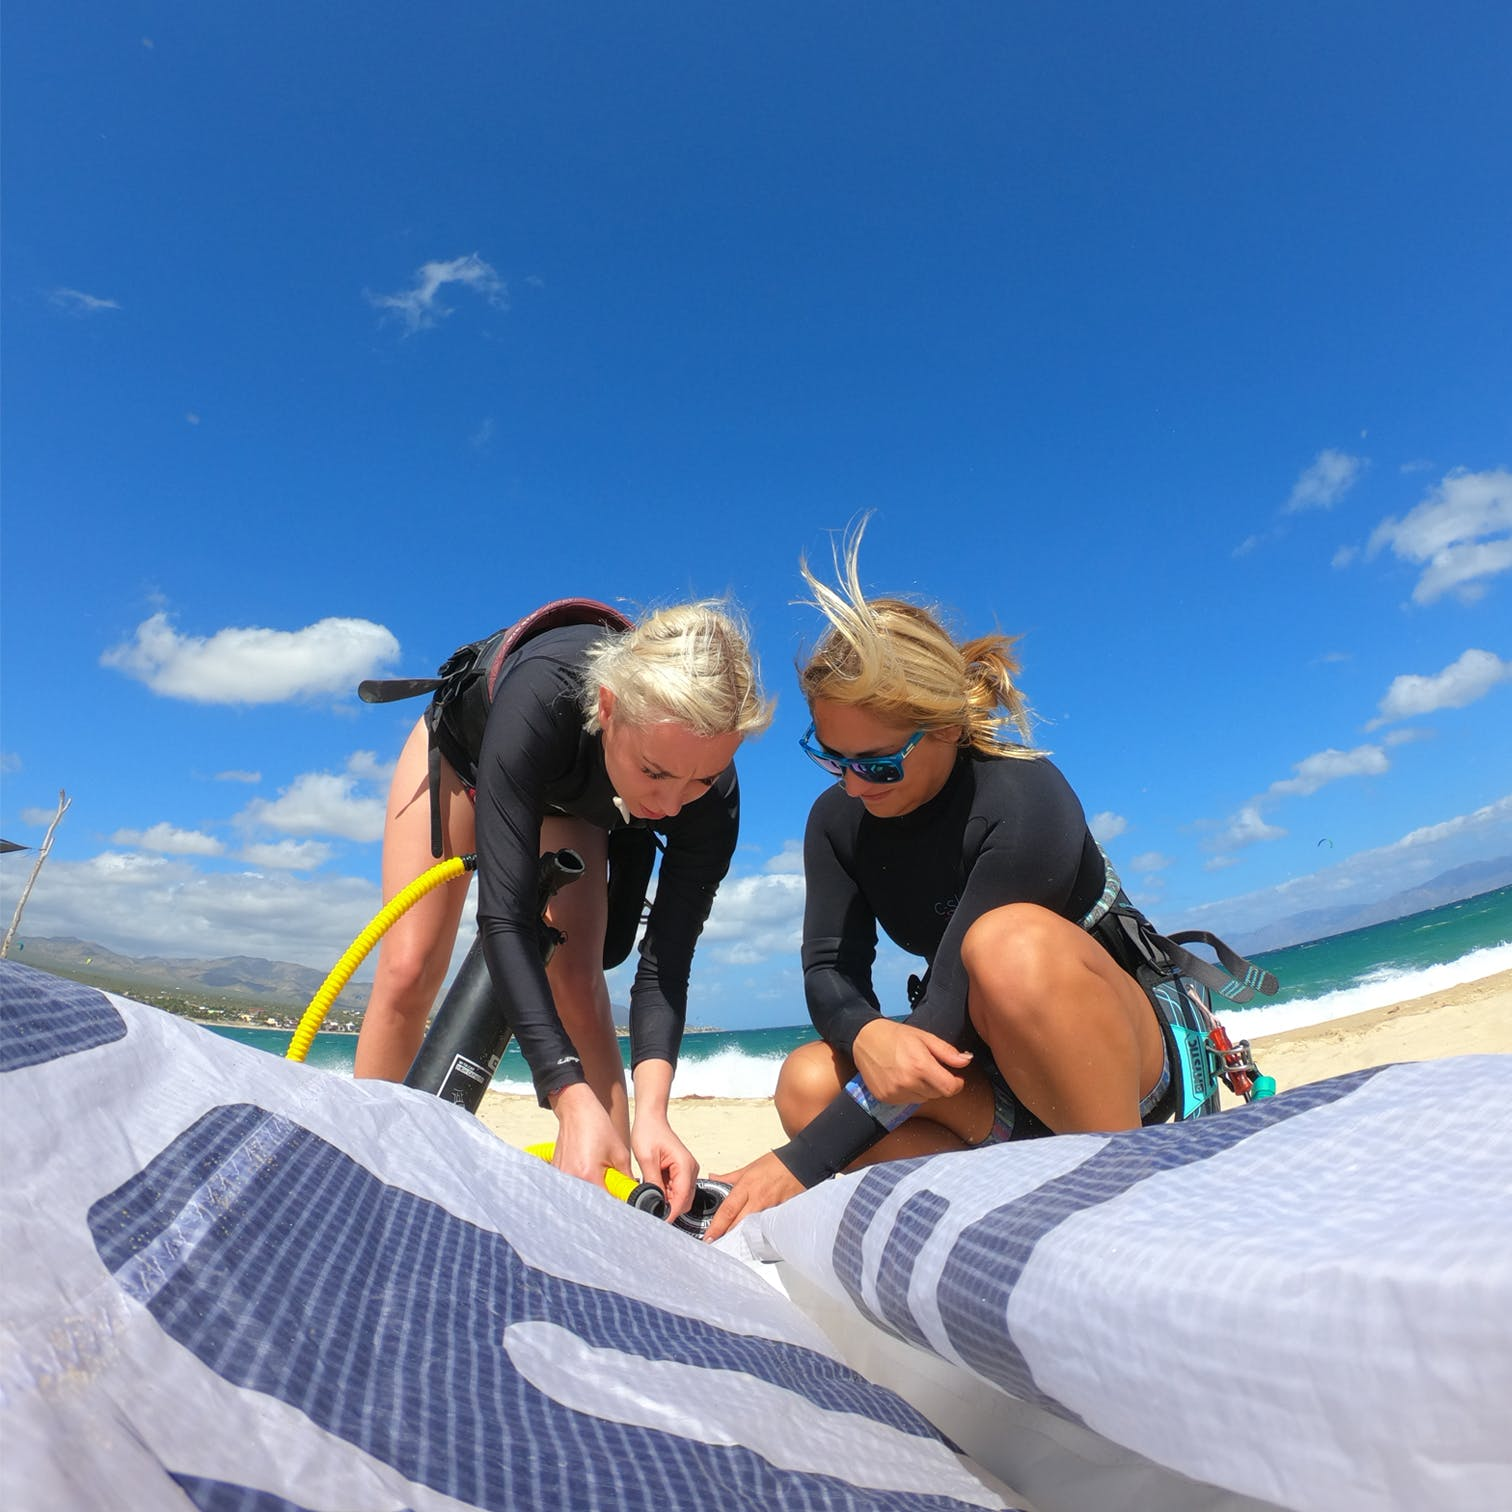 Our instructor will shoe you how to fall in love ith kitesurf in La ventana